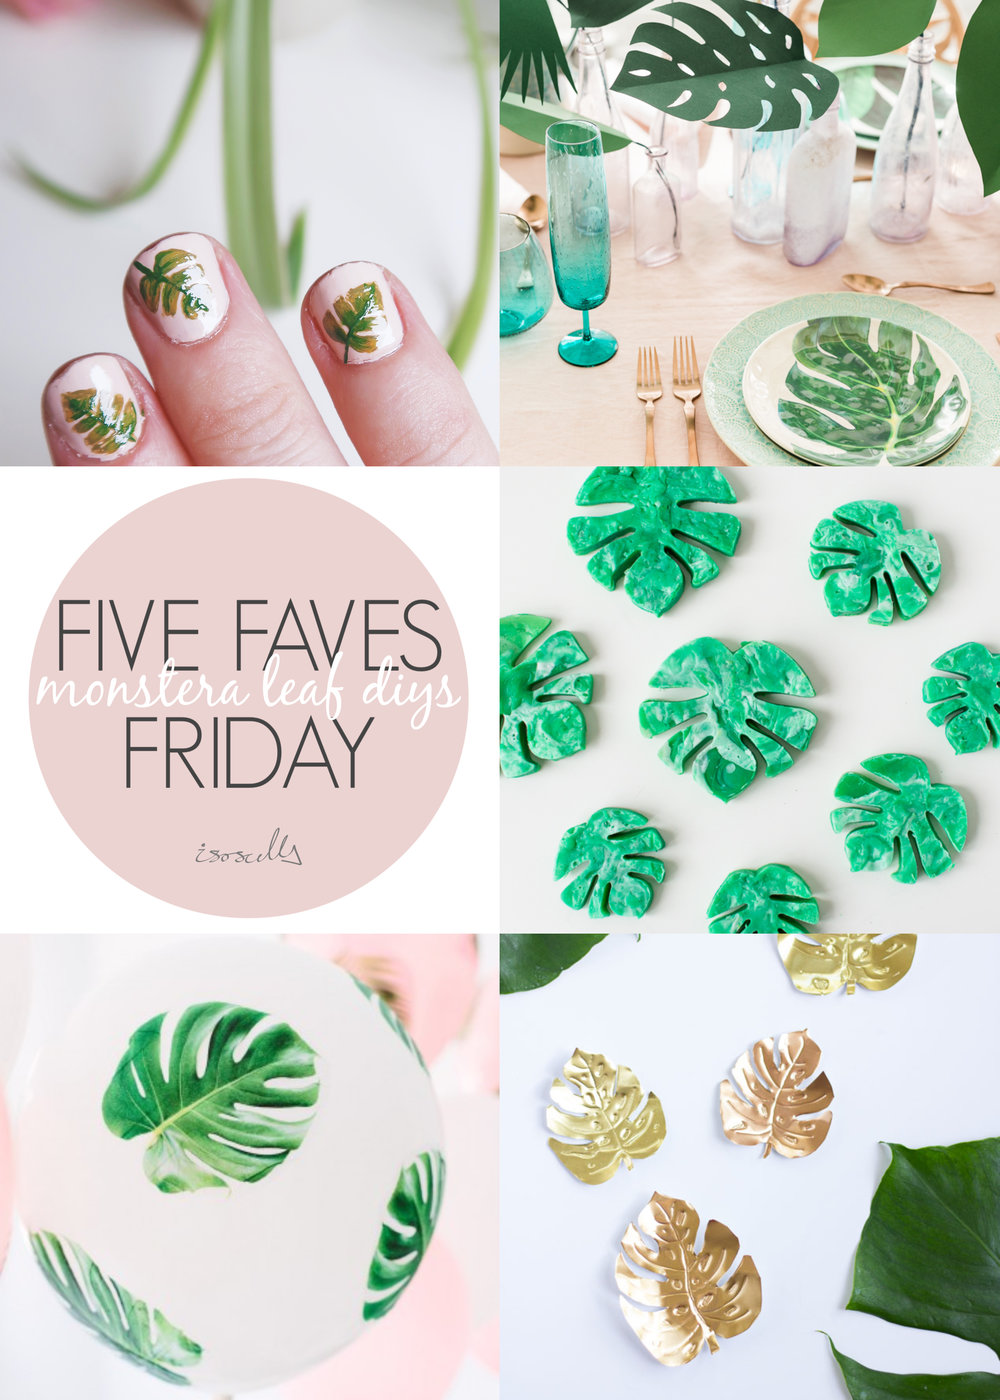 Five Faves Friday - Monstera Leaf DIYS - Isoscella